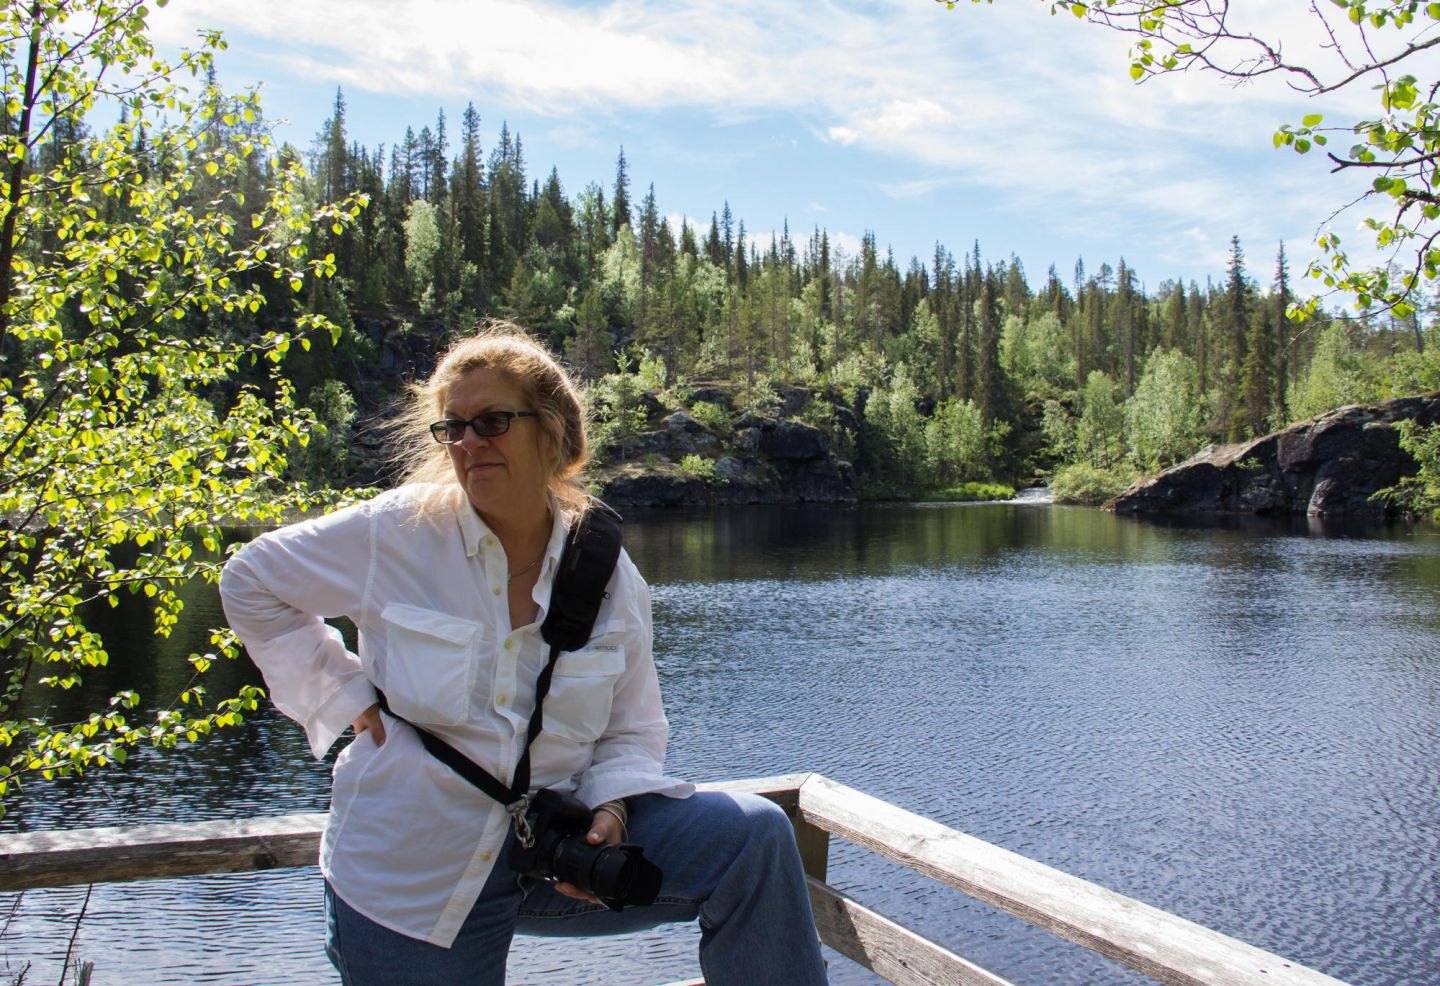 Location scout Lori Balton in Lapland